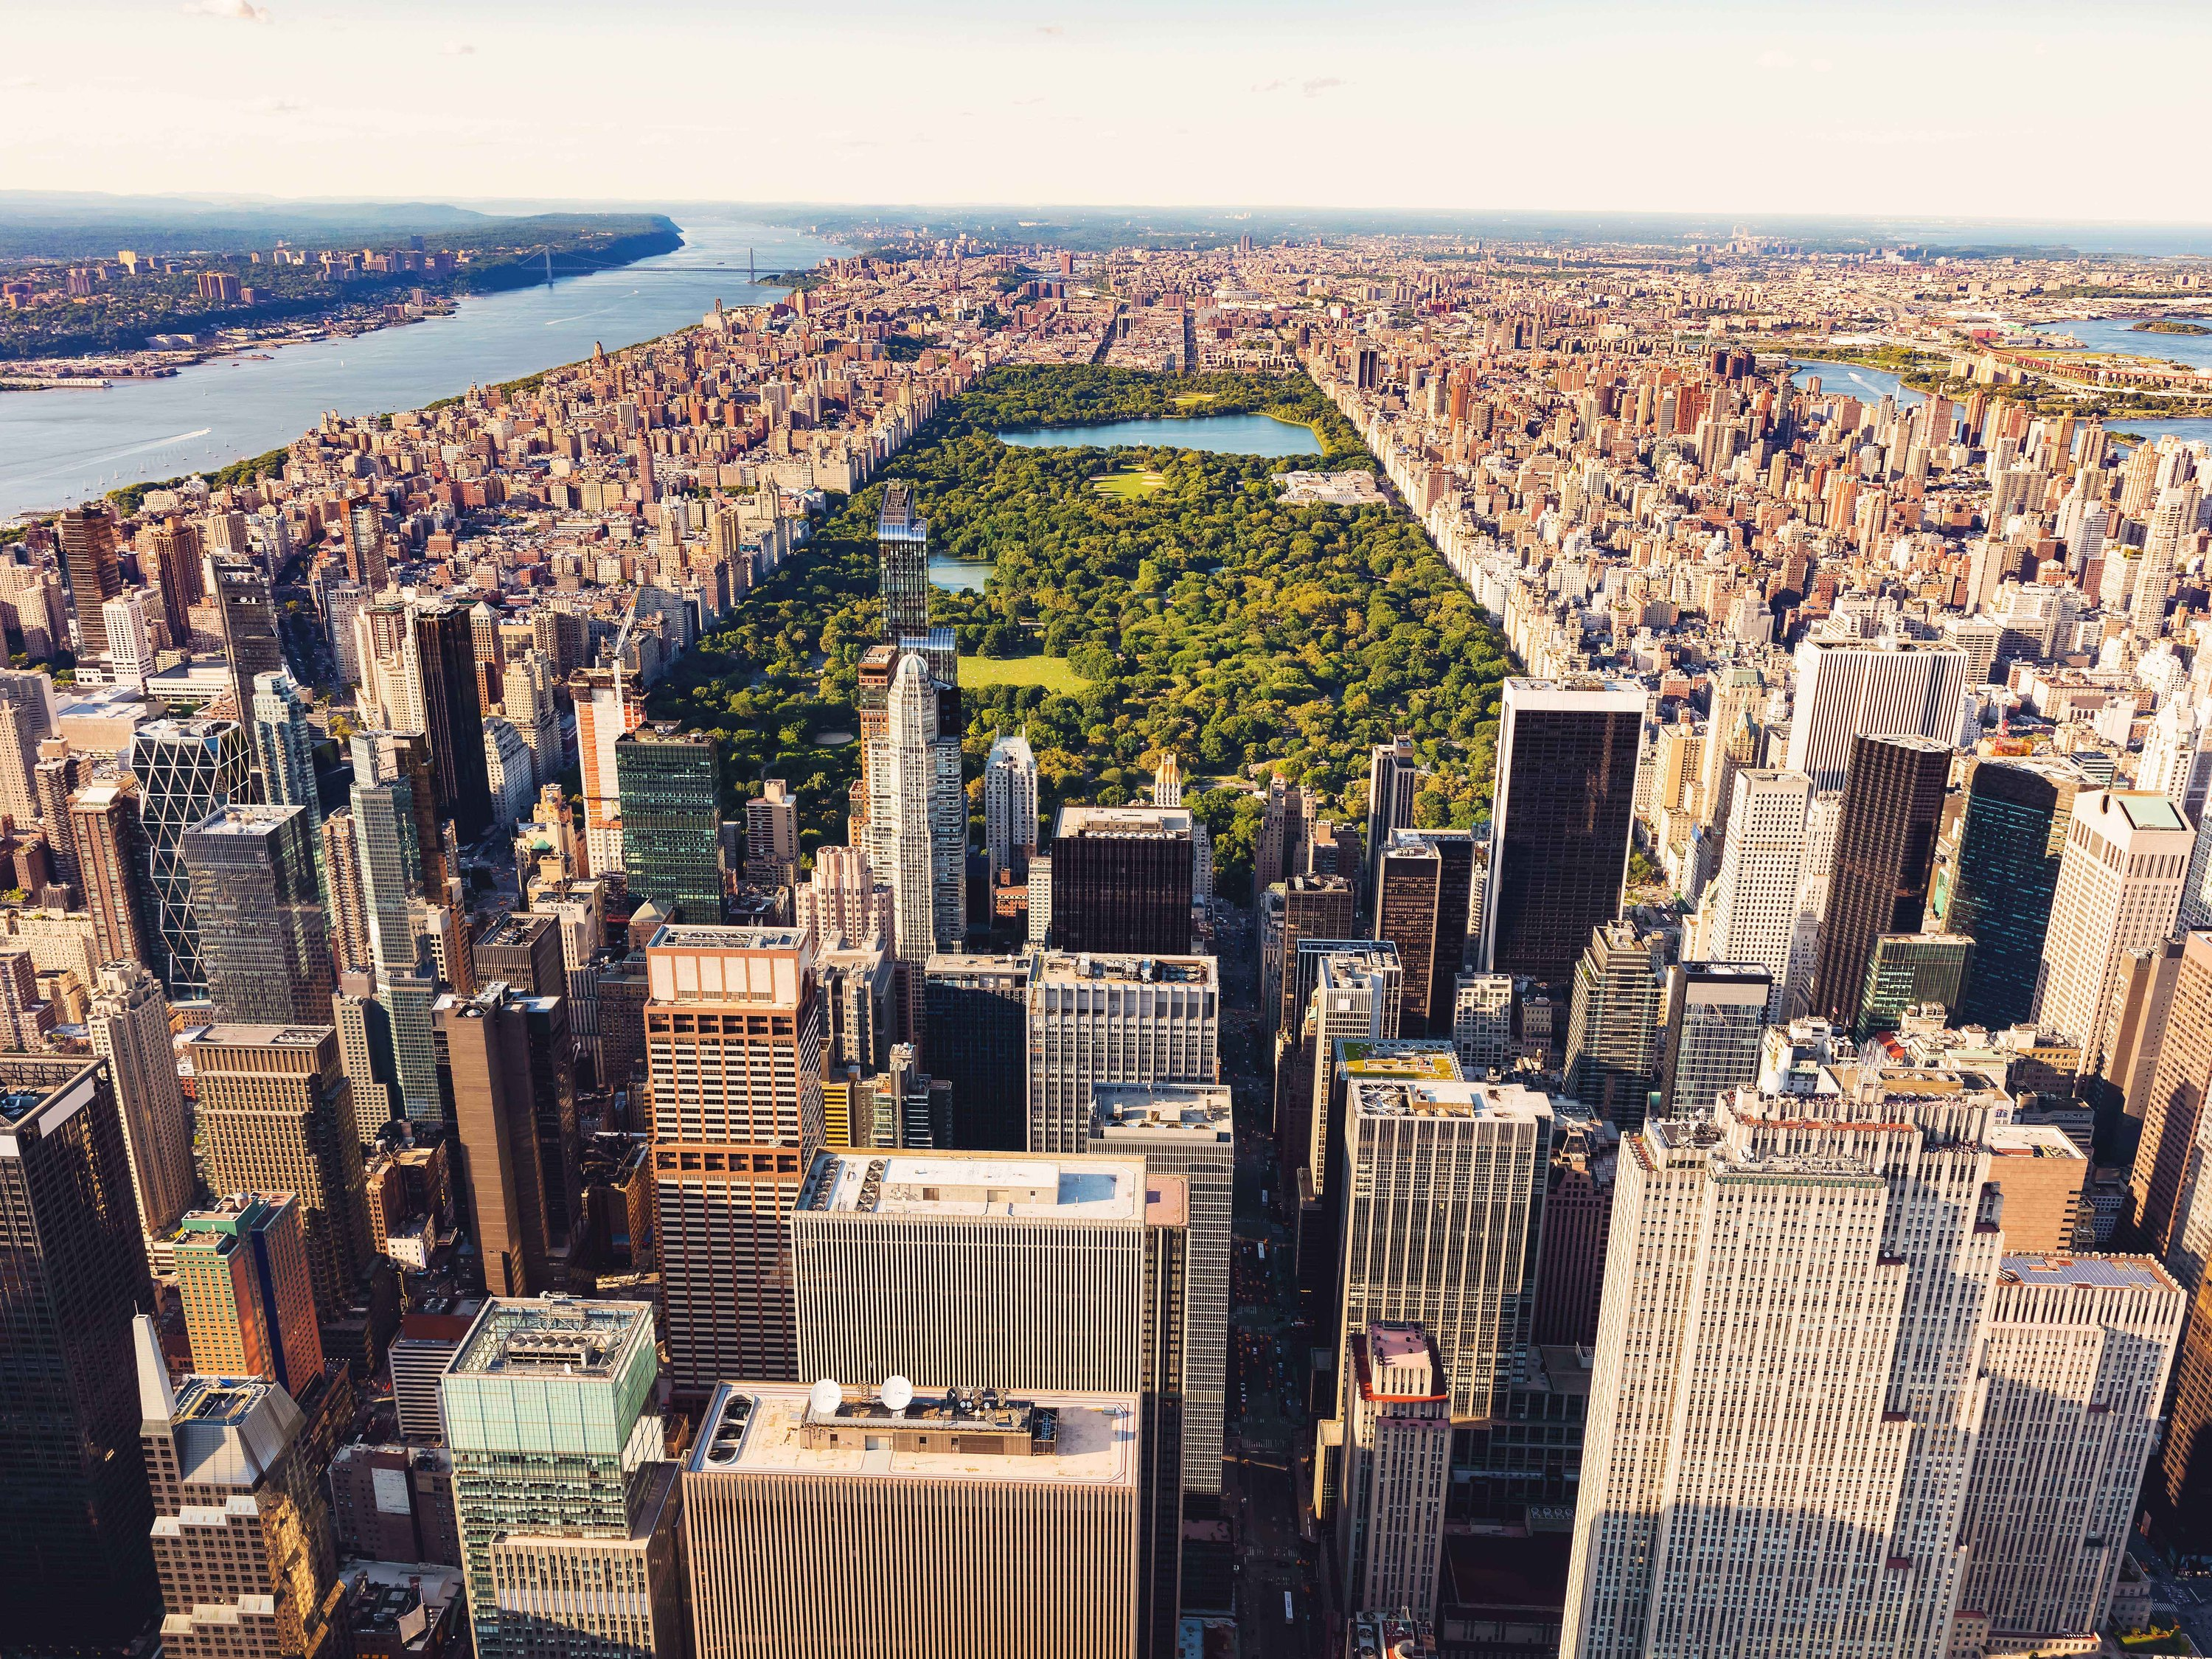 Watch this breathtaking helicopter footage of New York City from above